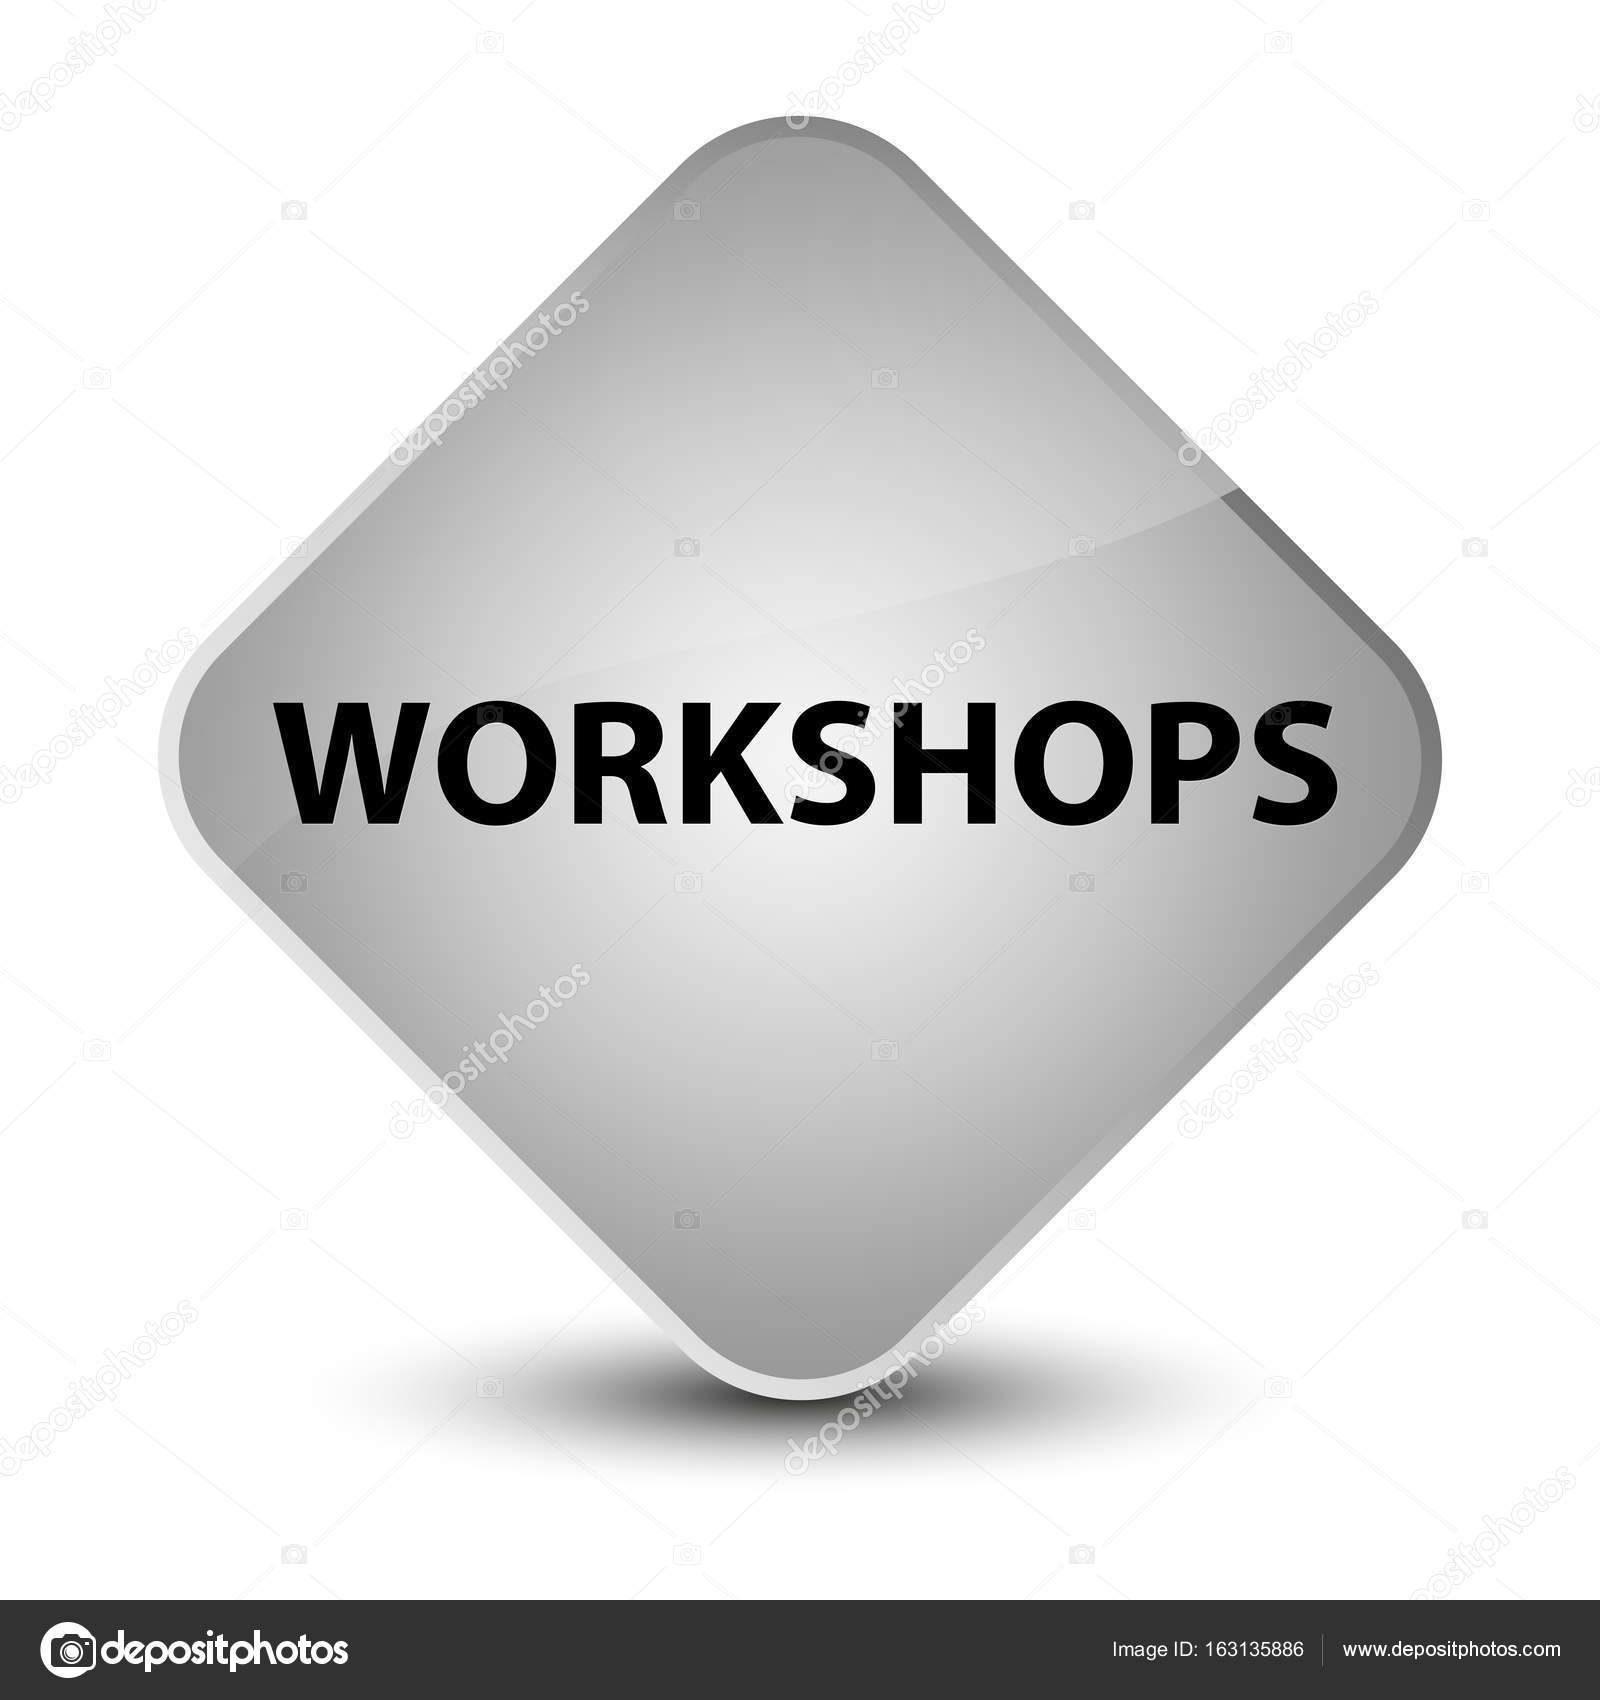 Workshops elegant white diamond button — Stock Photo